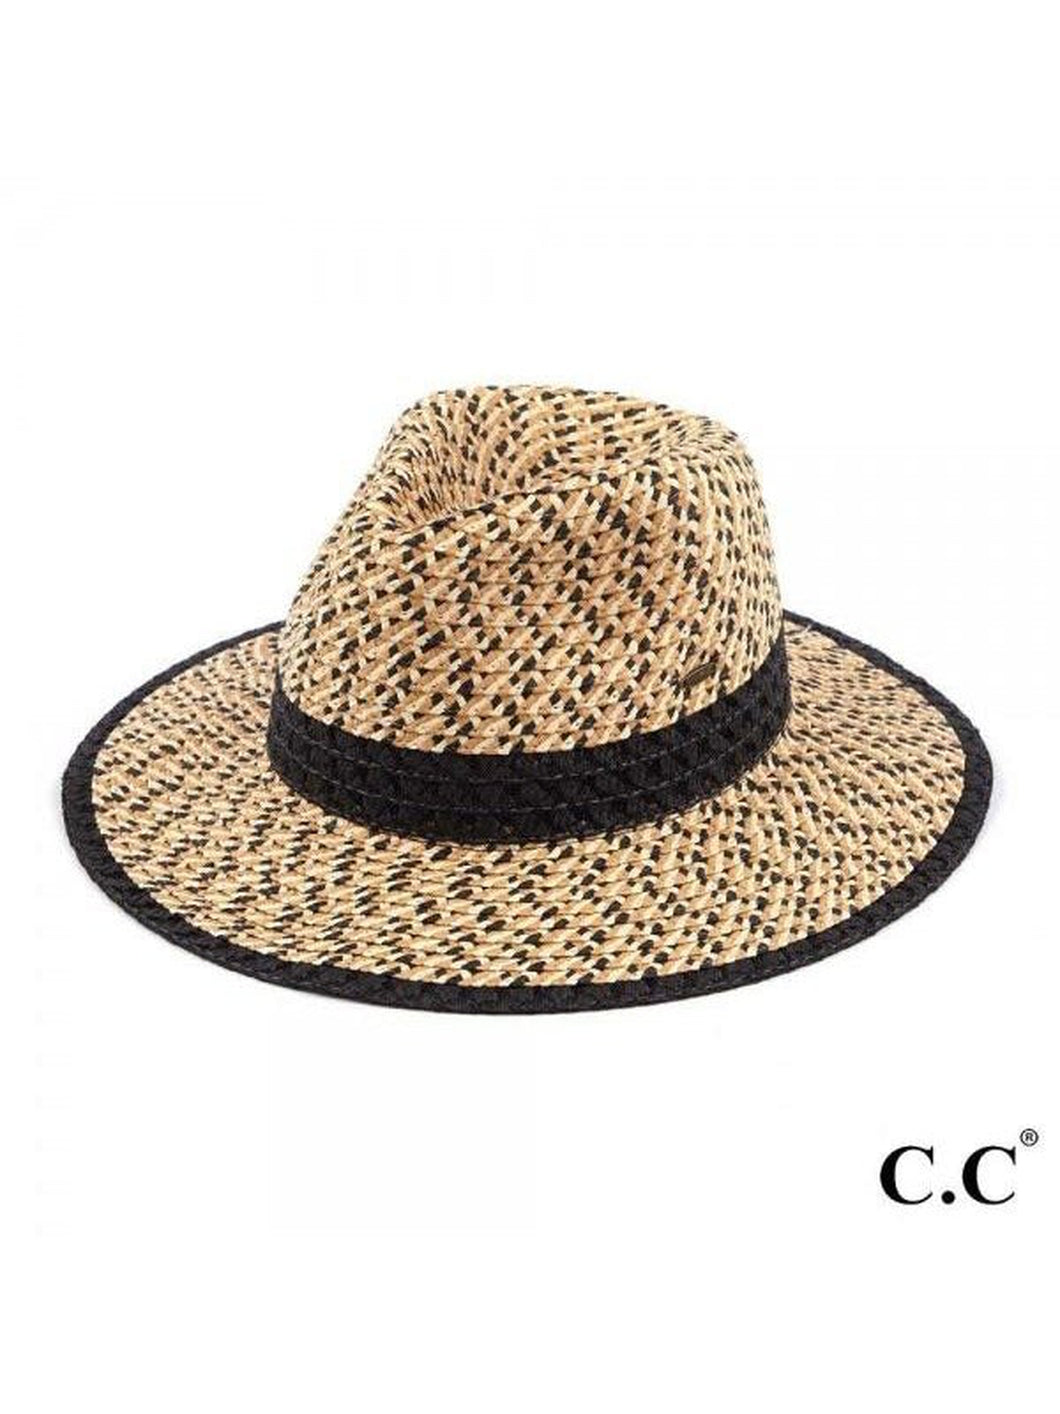 CC TRIPLE HEATHER PANAMA HAT